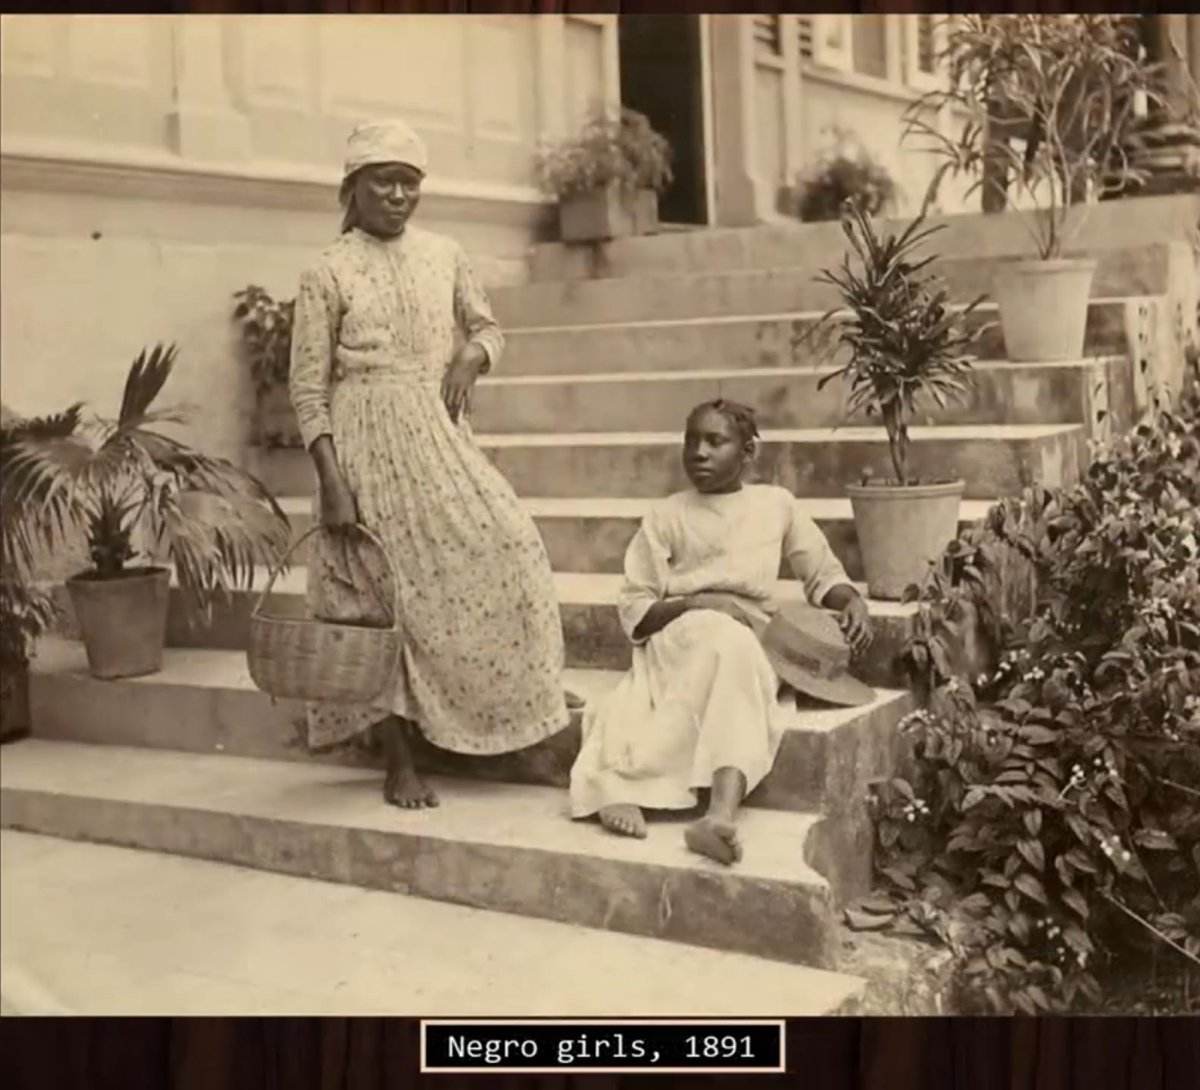 Unsure of source. But a thread of rare vintage photos of every-day life in Jamaica before the 1900s. (with captions) 📸